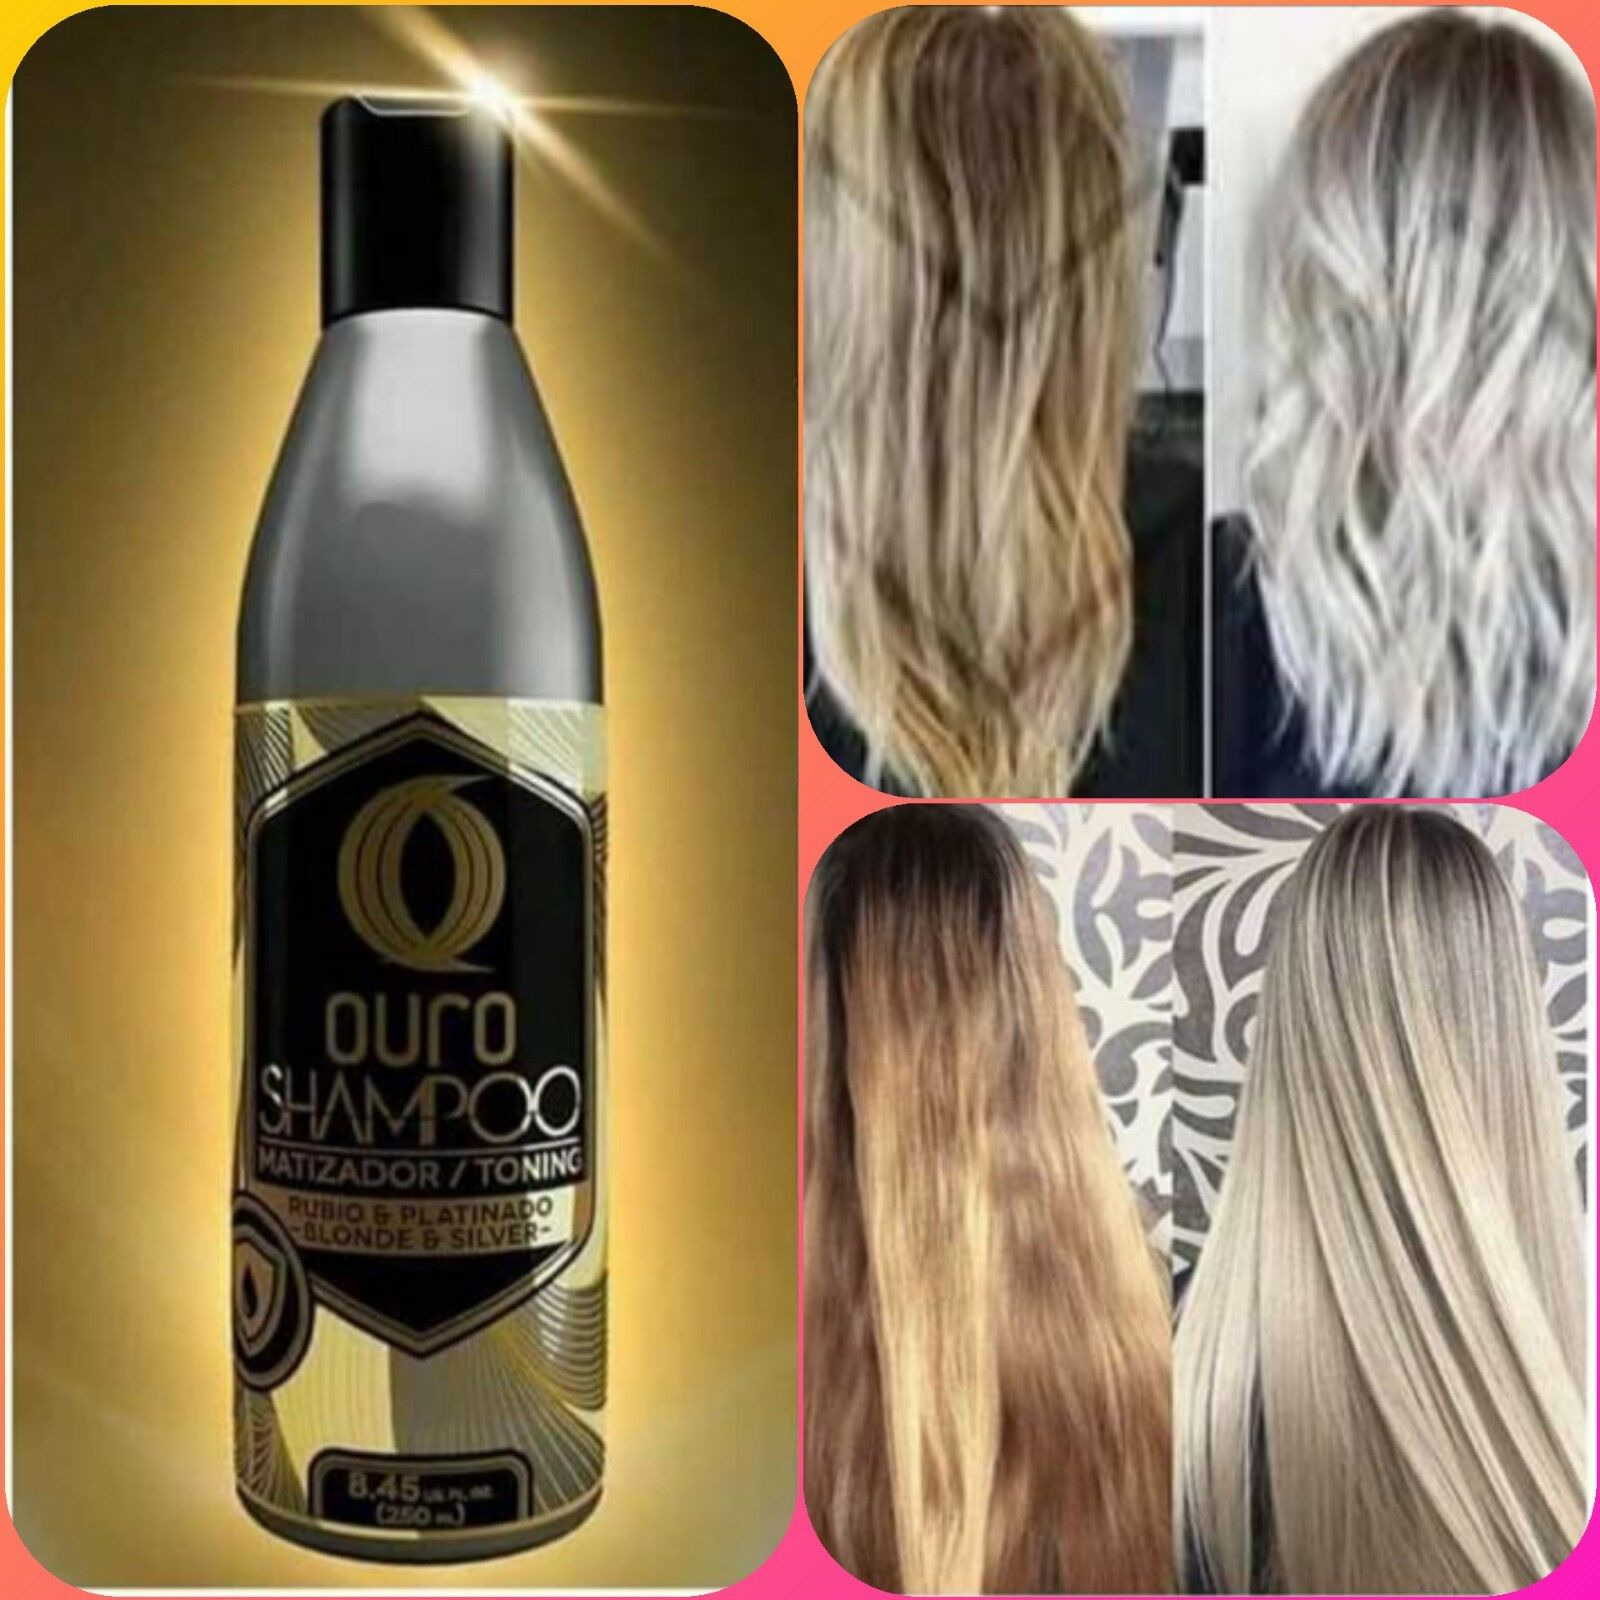 OURO TONING SHAMPOO FOR BLONDE & SILVER HAIR 8.45oz MATIZADO